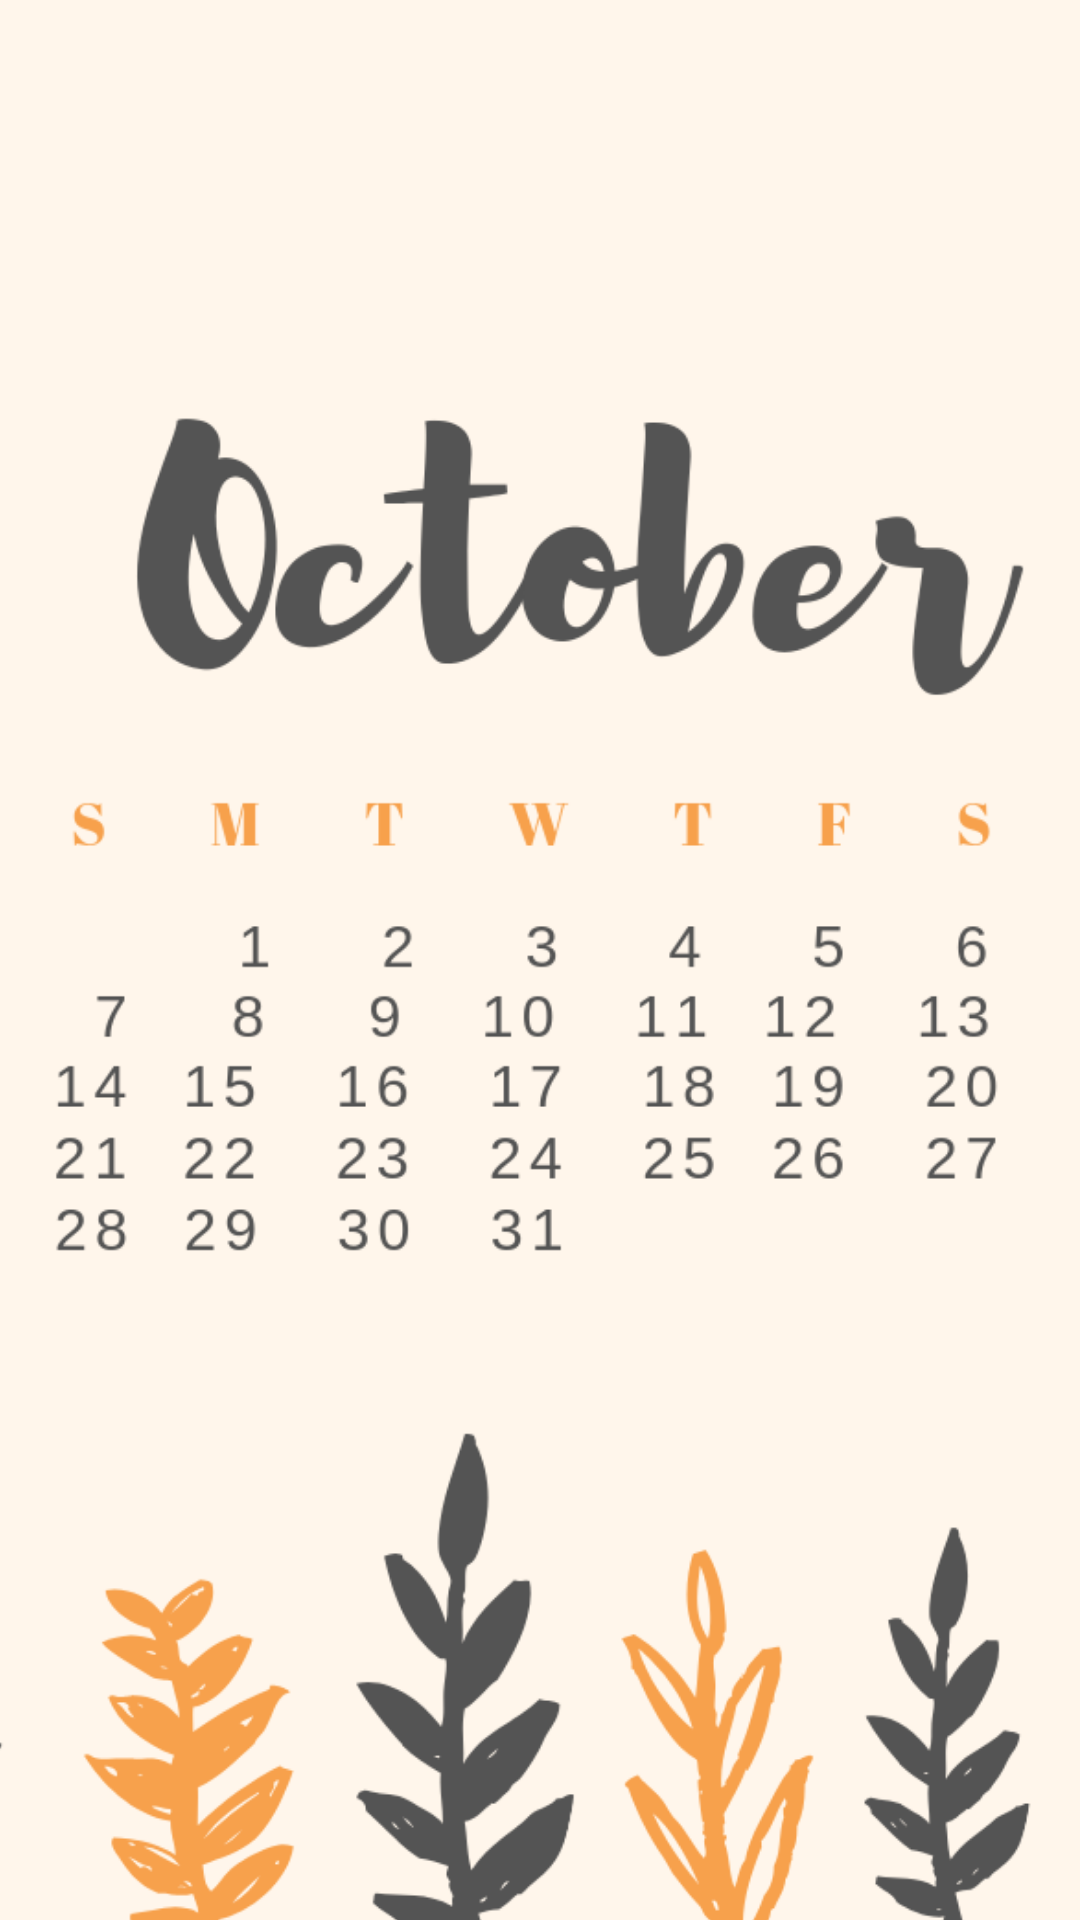 Free Download October Calendars & Wallpapers in 2019